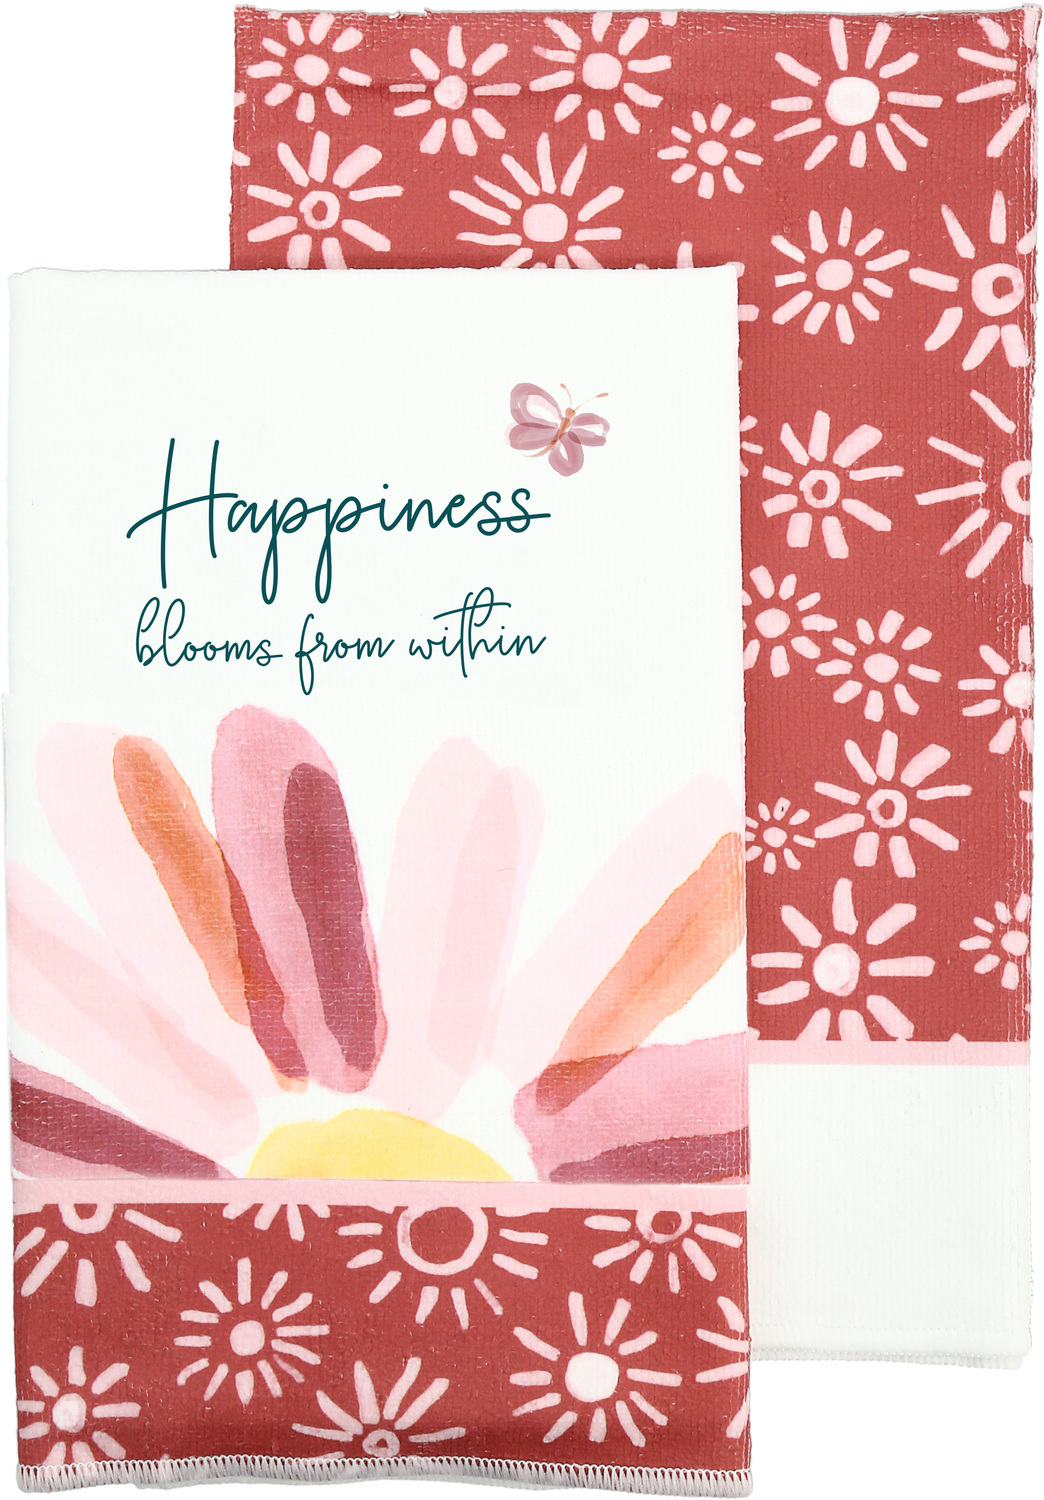 "Happiness by Rosy Heart - Happiness - Tea Towel Gift Set (2 - 19.75"" x 27.5"")"